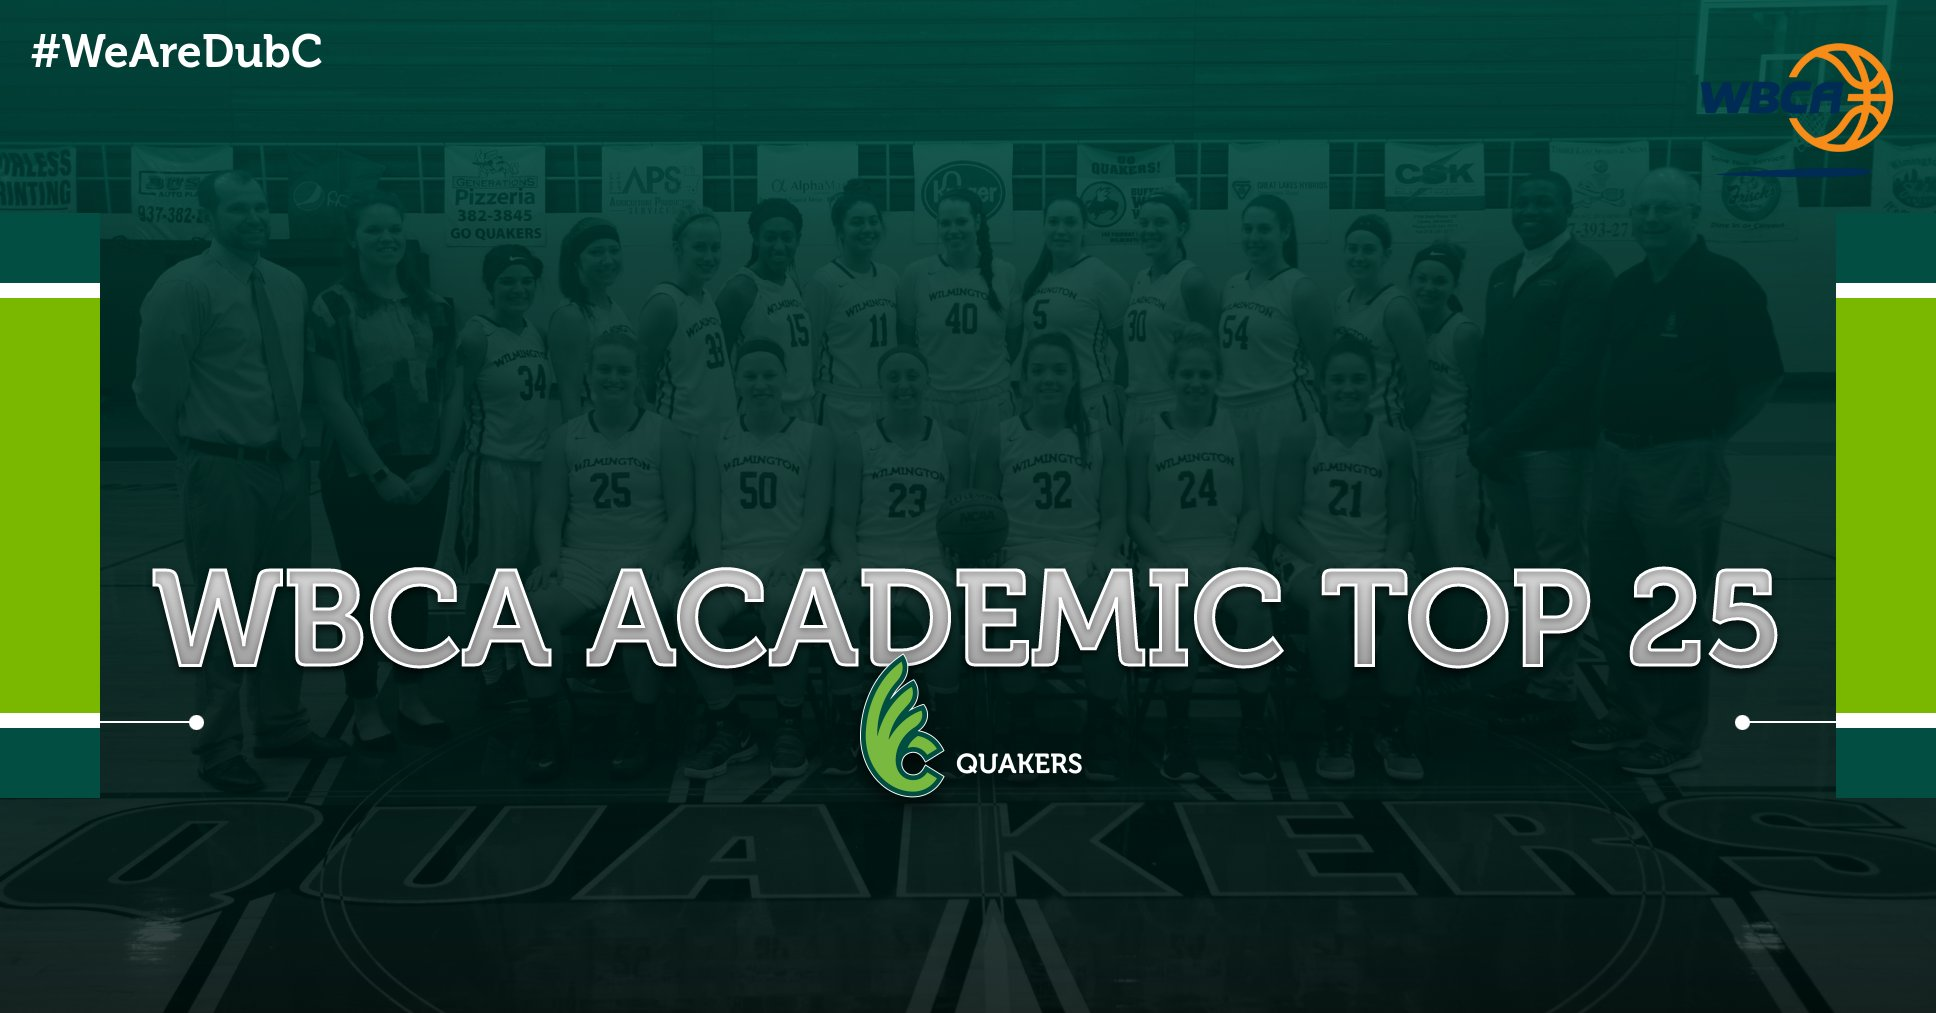 Women's Basketball Earns Spot on WBCA Academic Top 25 Honor Roll